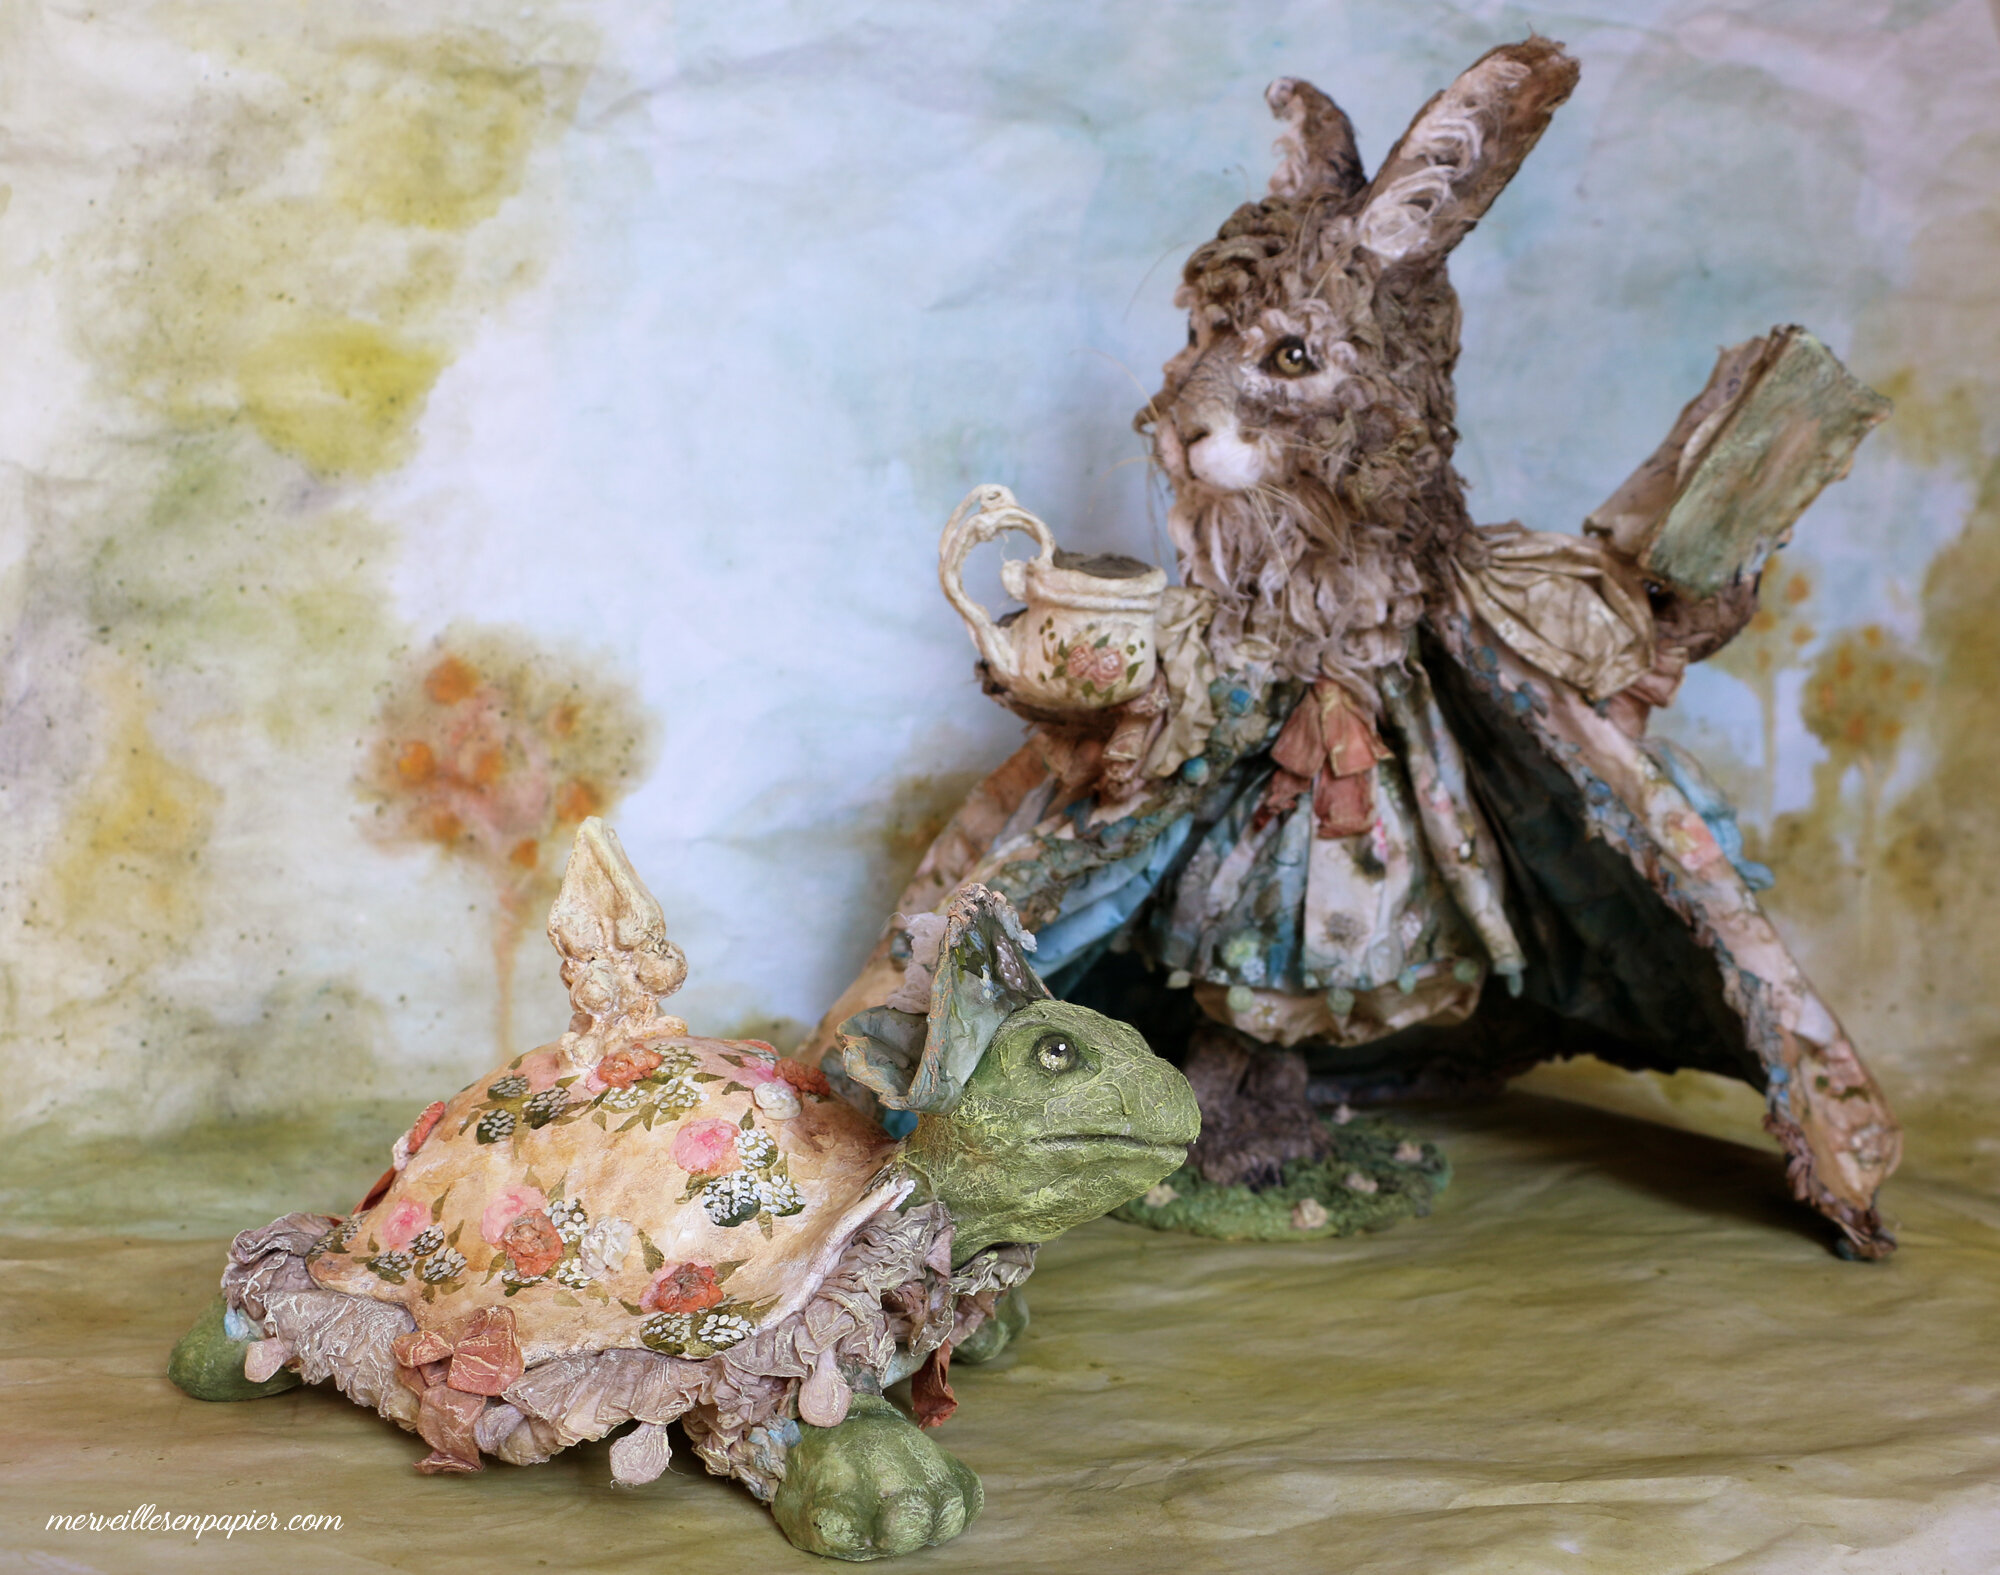 the-hare-and-the-tortoise40.jpg